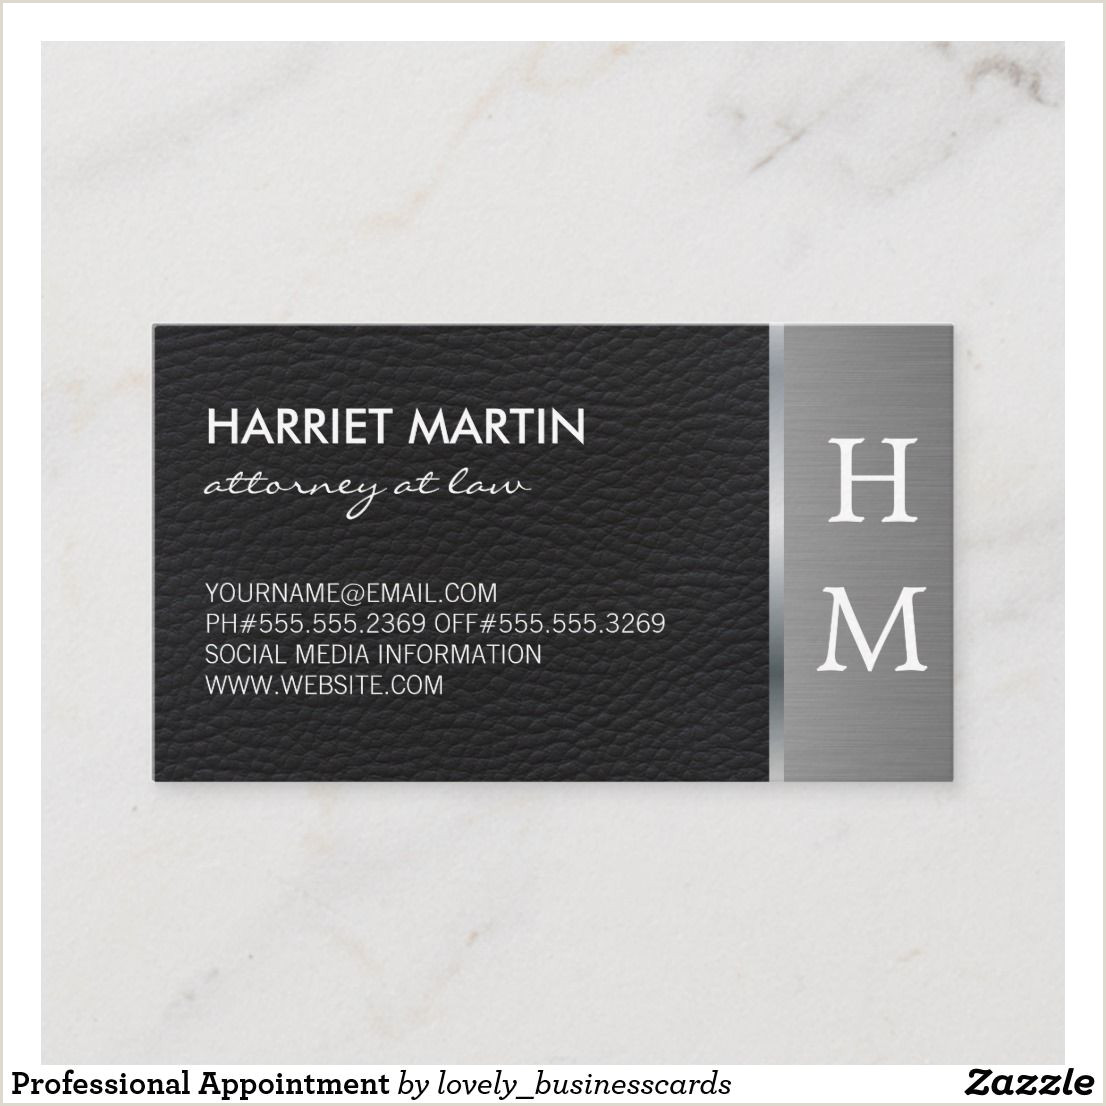 Business Cards With Pictures On Them Professional Appointment Zazzle